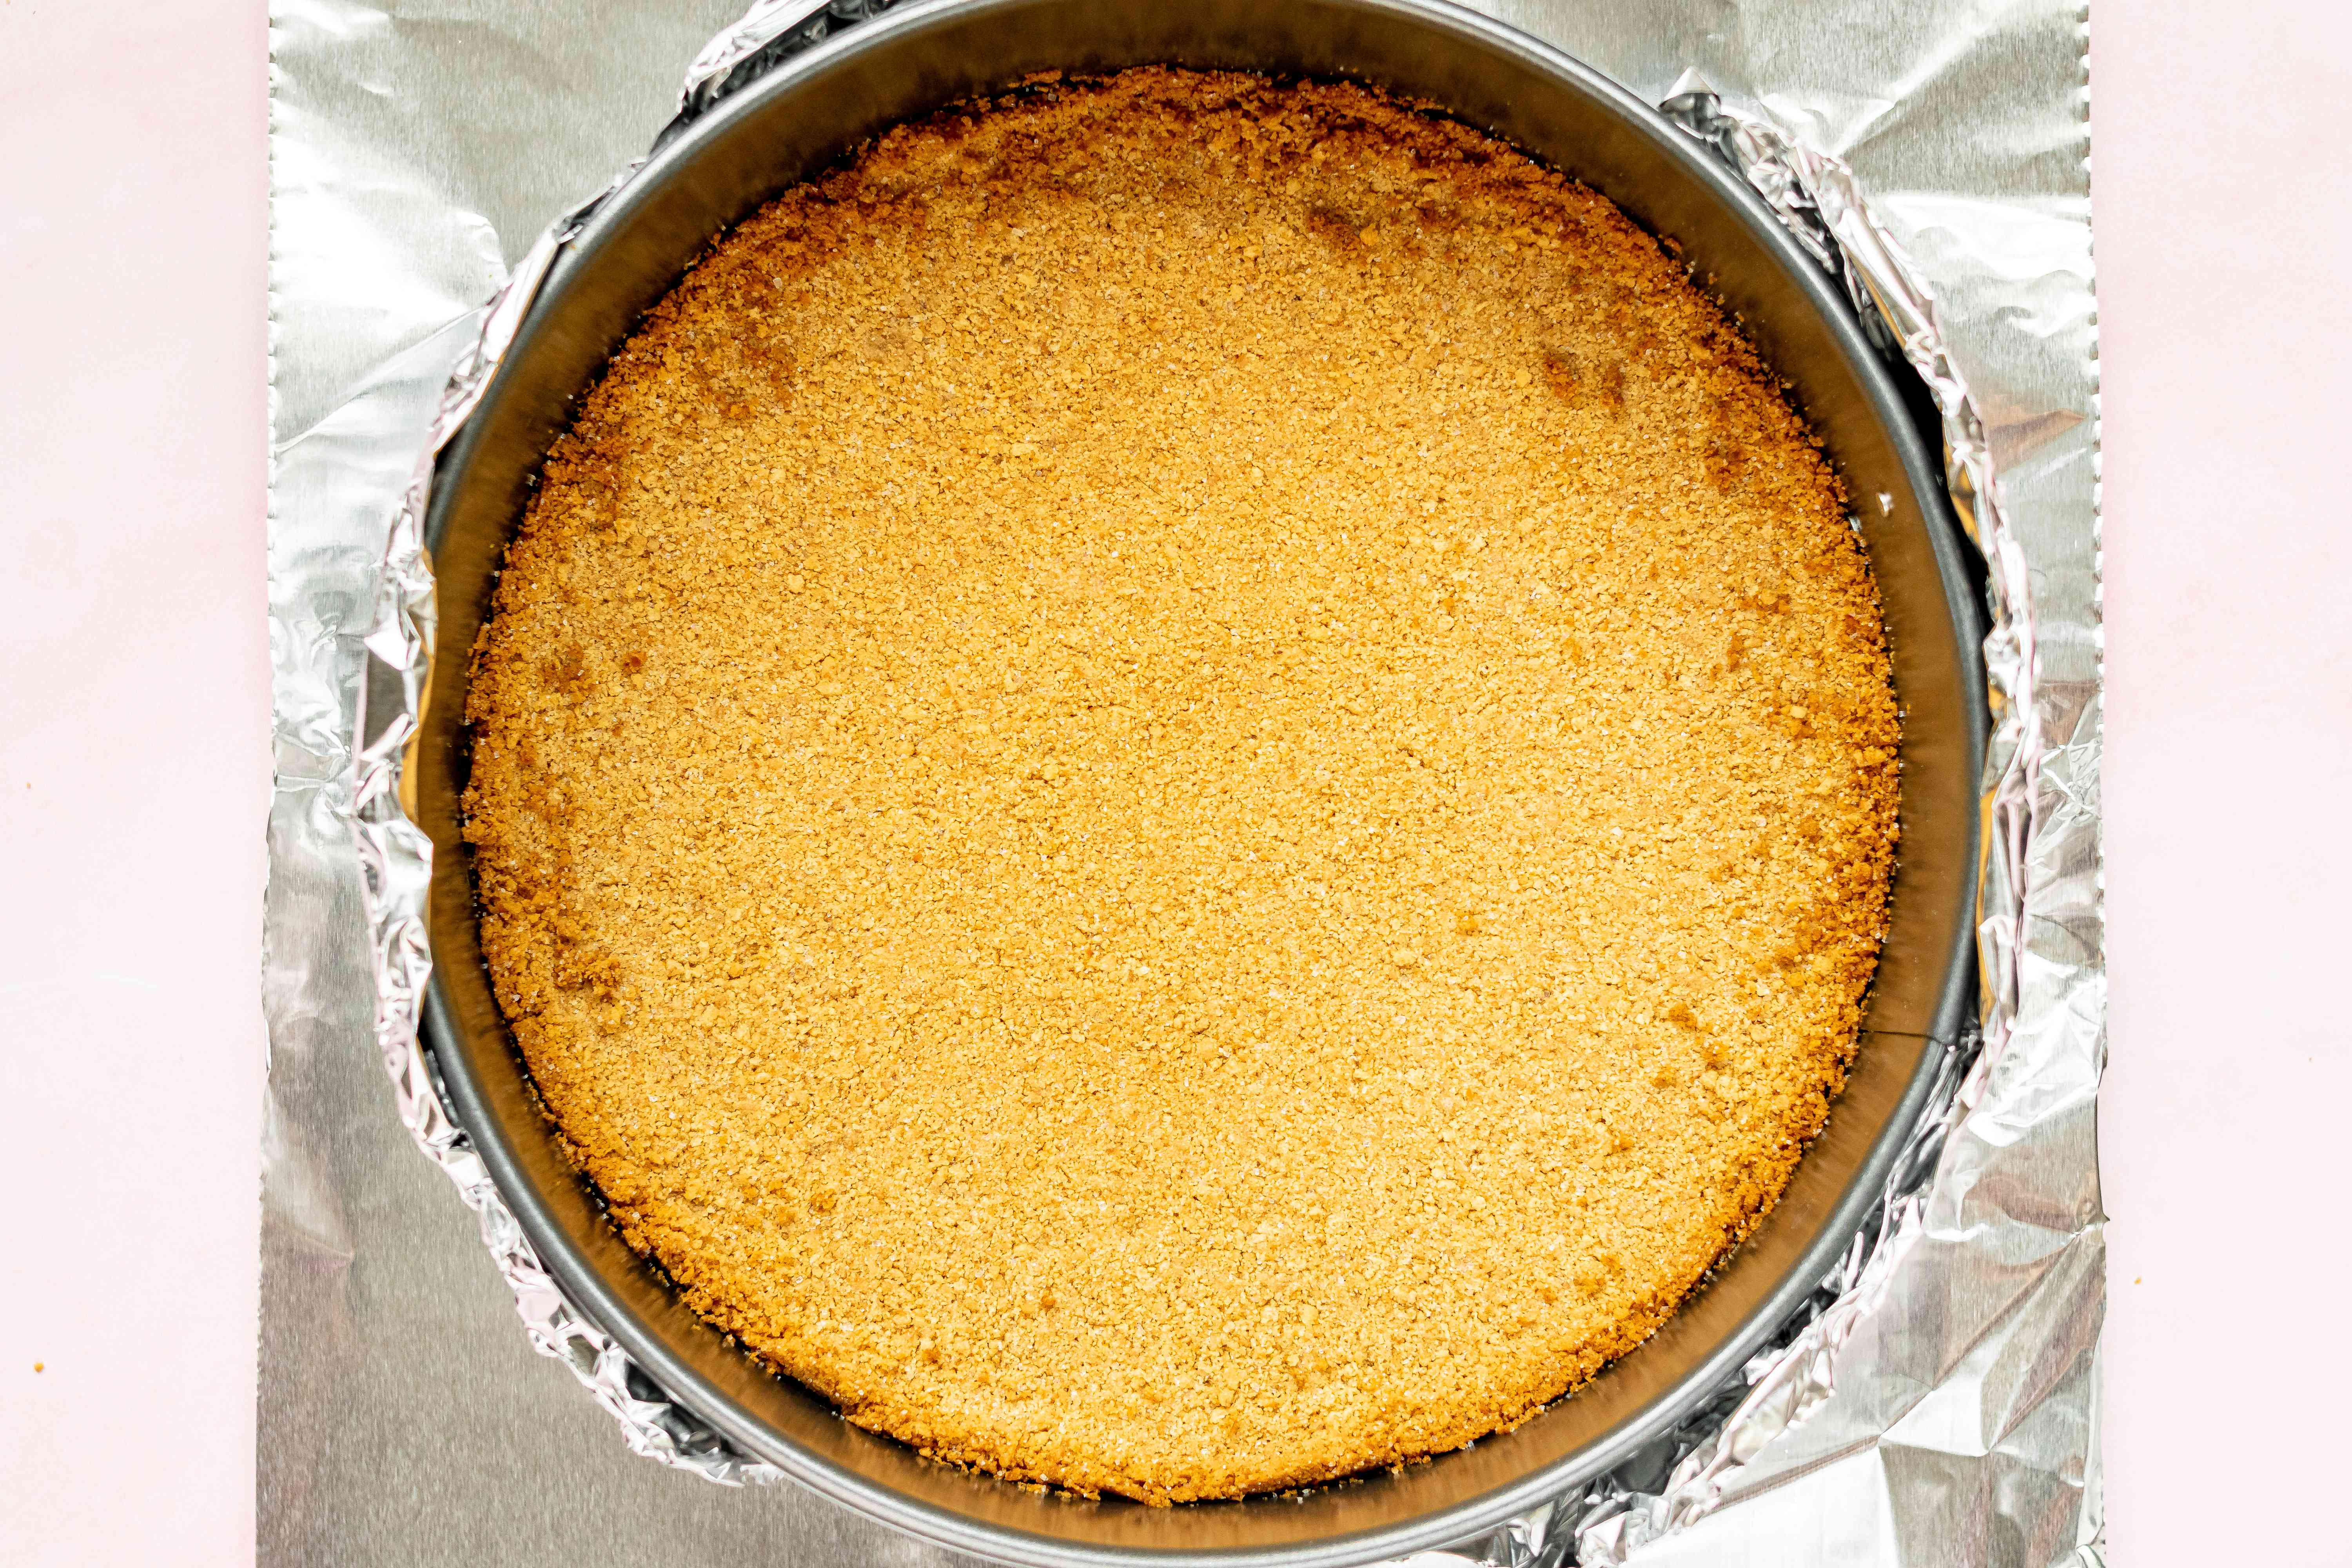 Wrapping the springform pan in foil to make an easy cheesecake recipe.